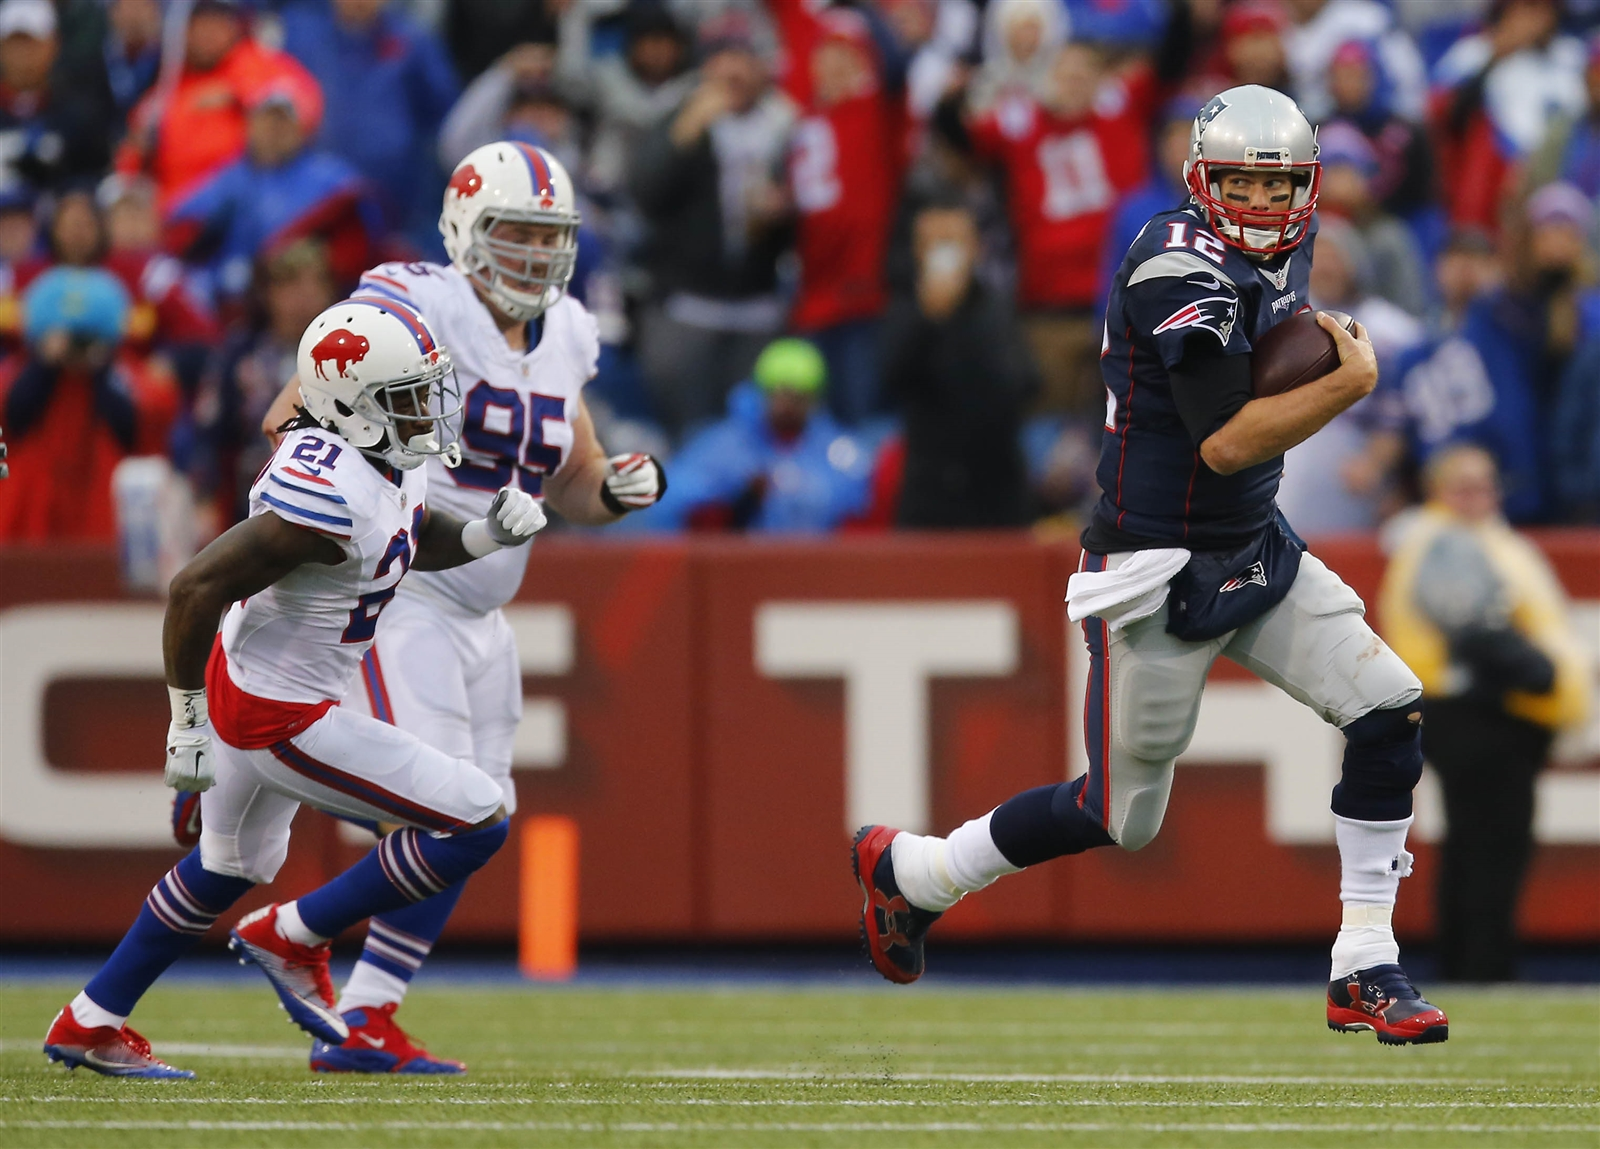 Tom Brady runs away from Bills defenders during the third quarter. (Mark Mulville/Buffalo News)